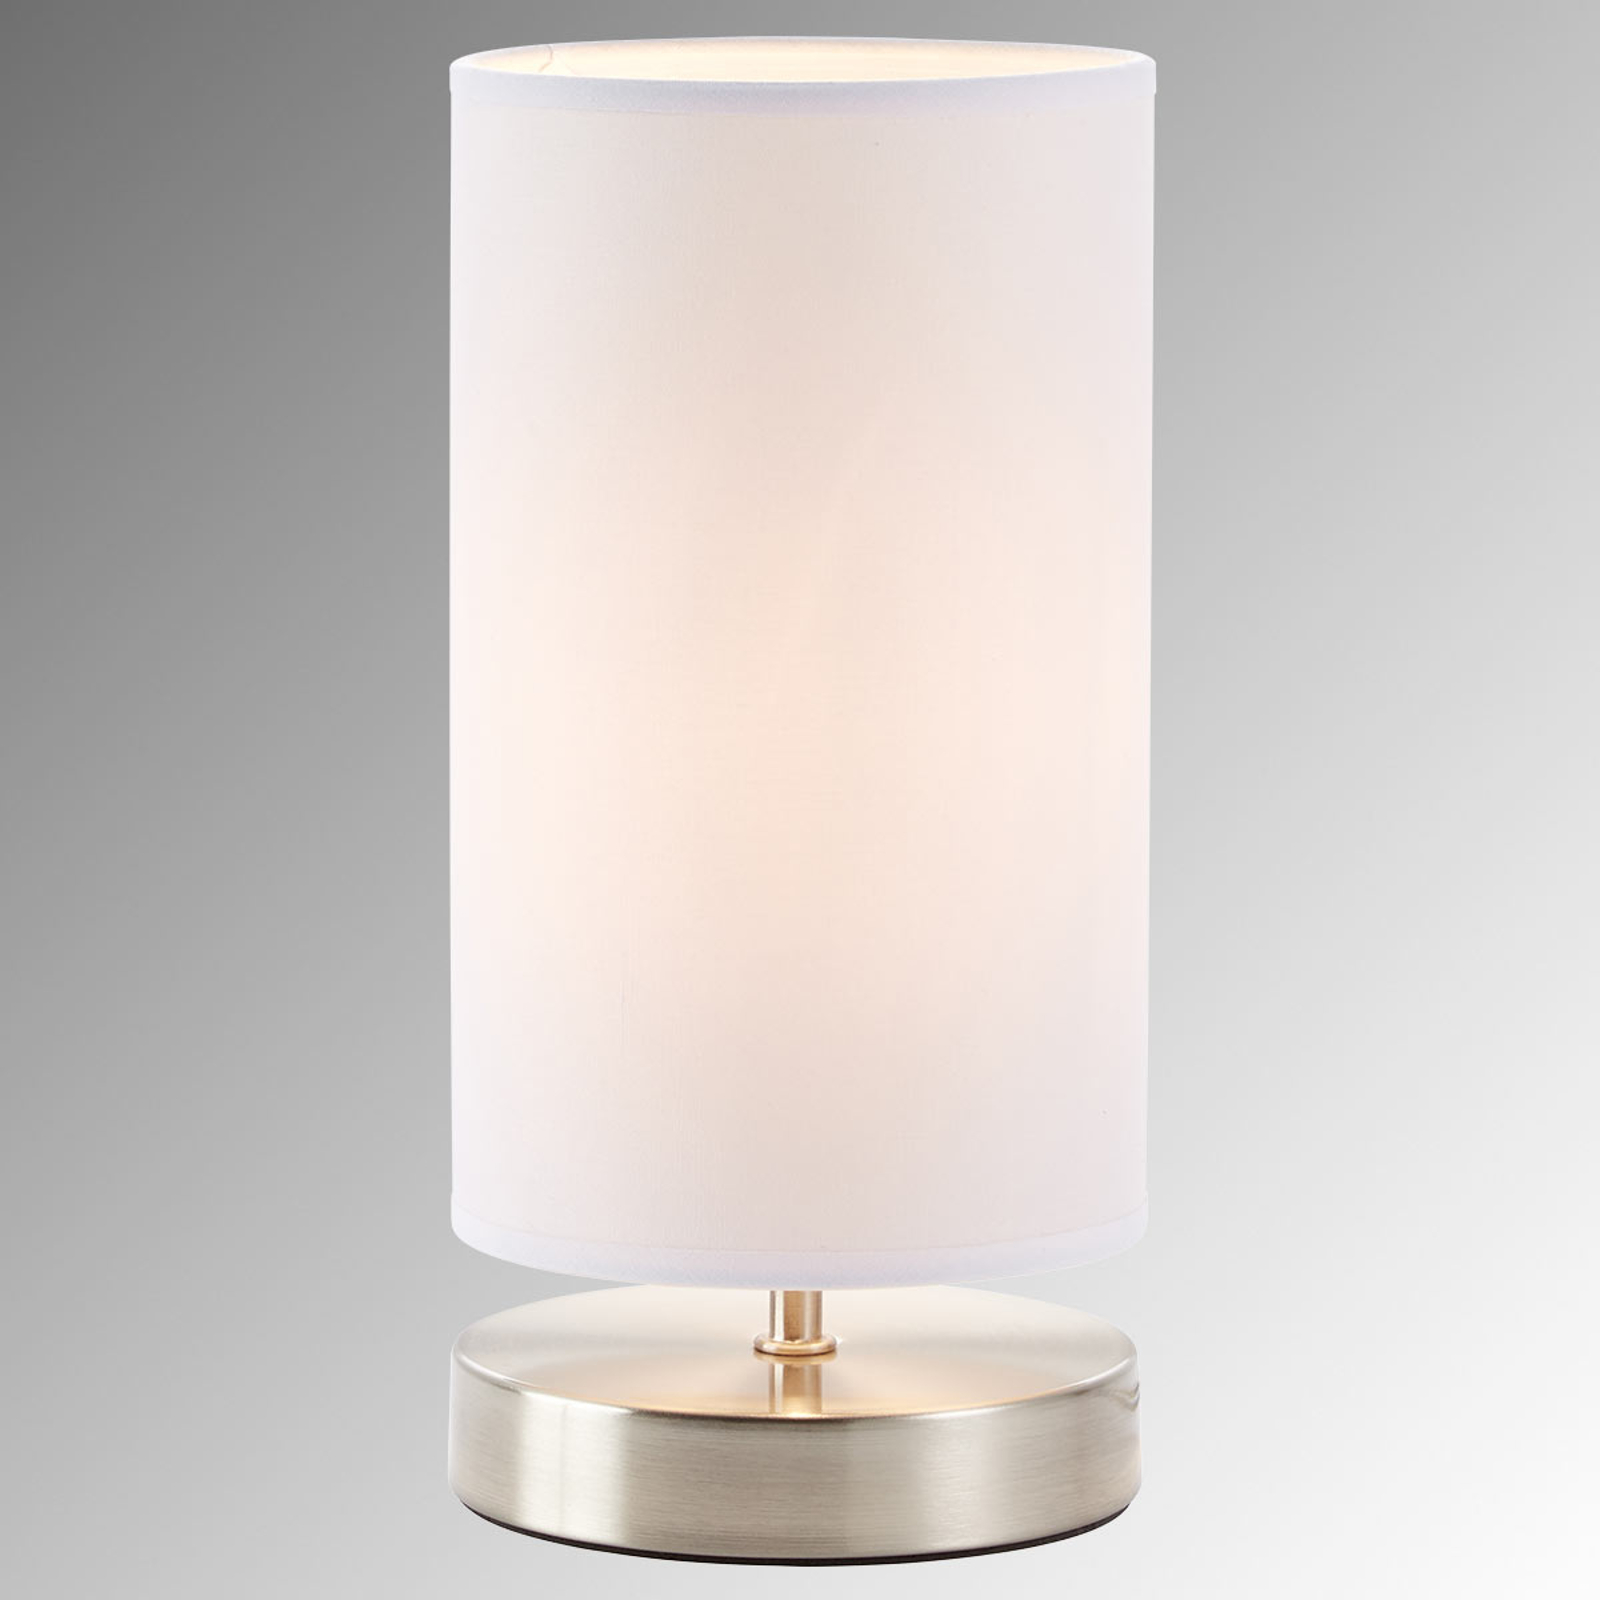 White fabric table lamp Claire_1508857_1